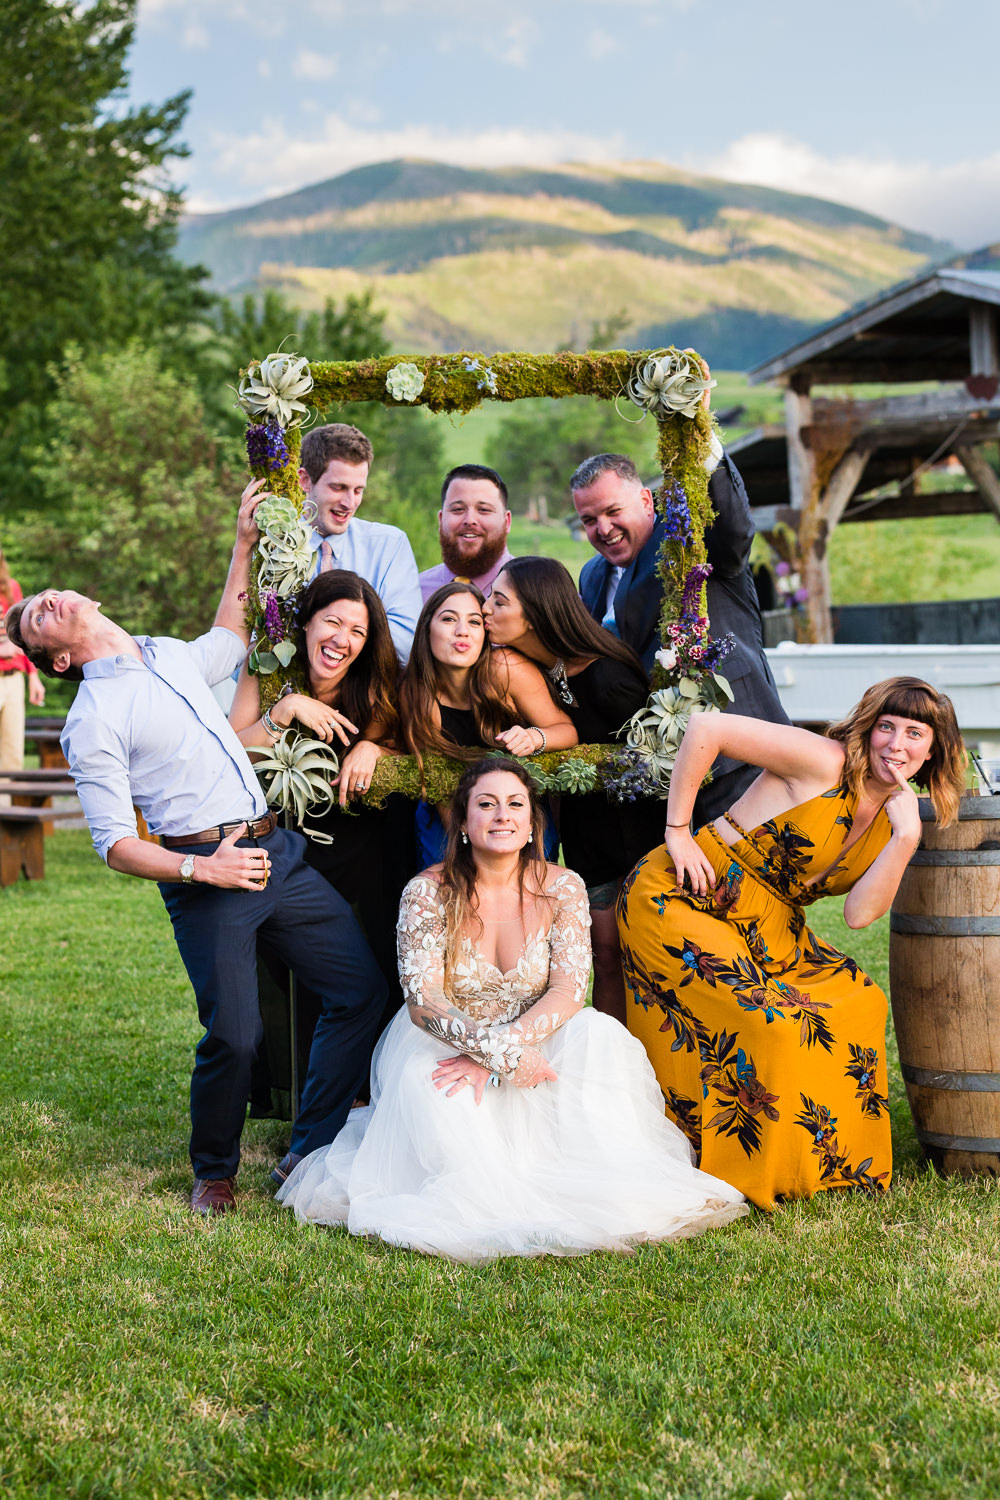 bozeman-hart-ranch-wedding-friends-pose-with-bride.jpg